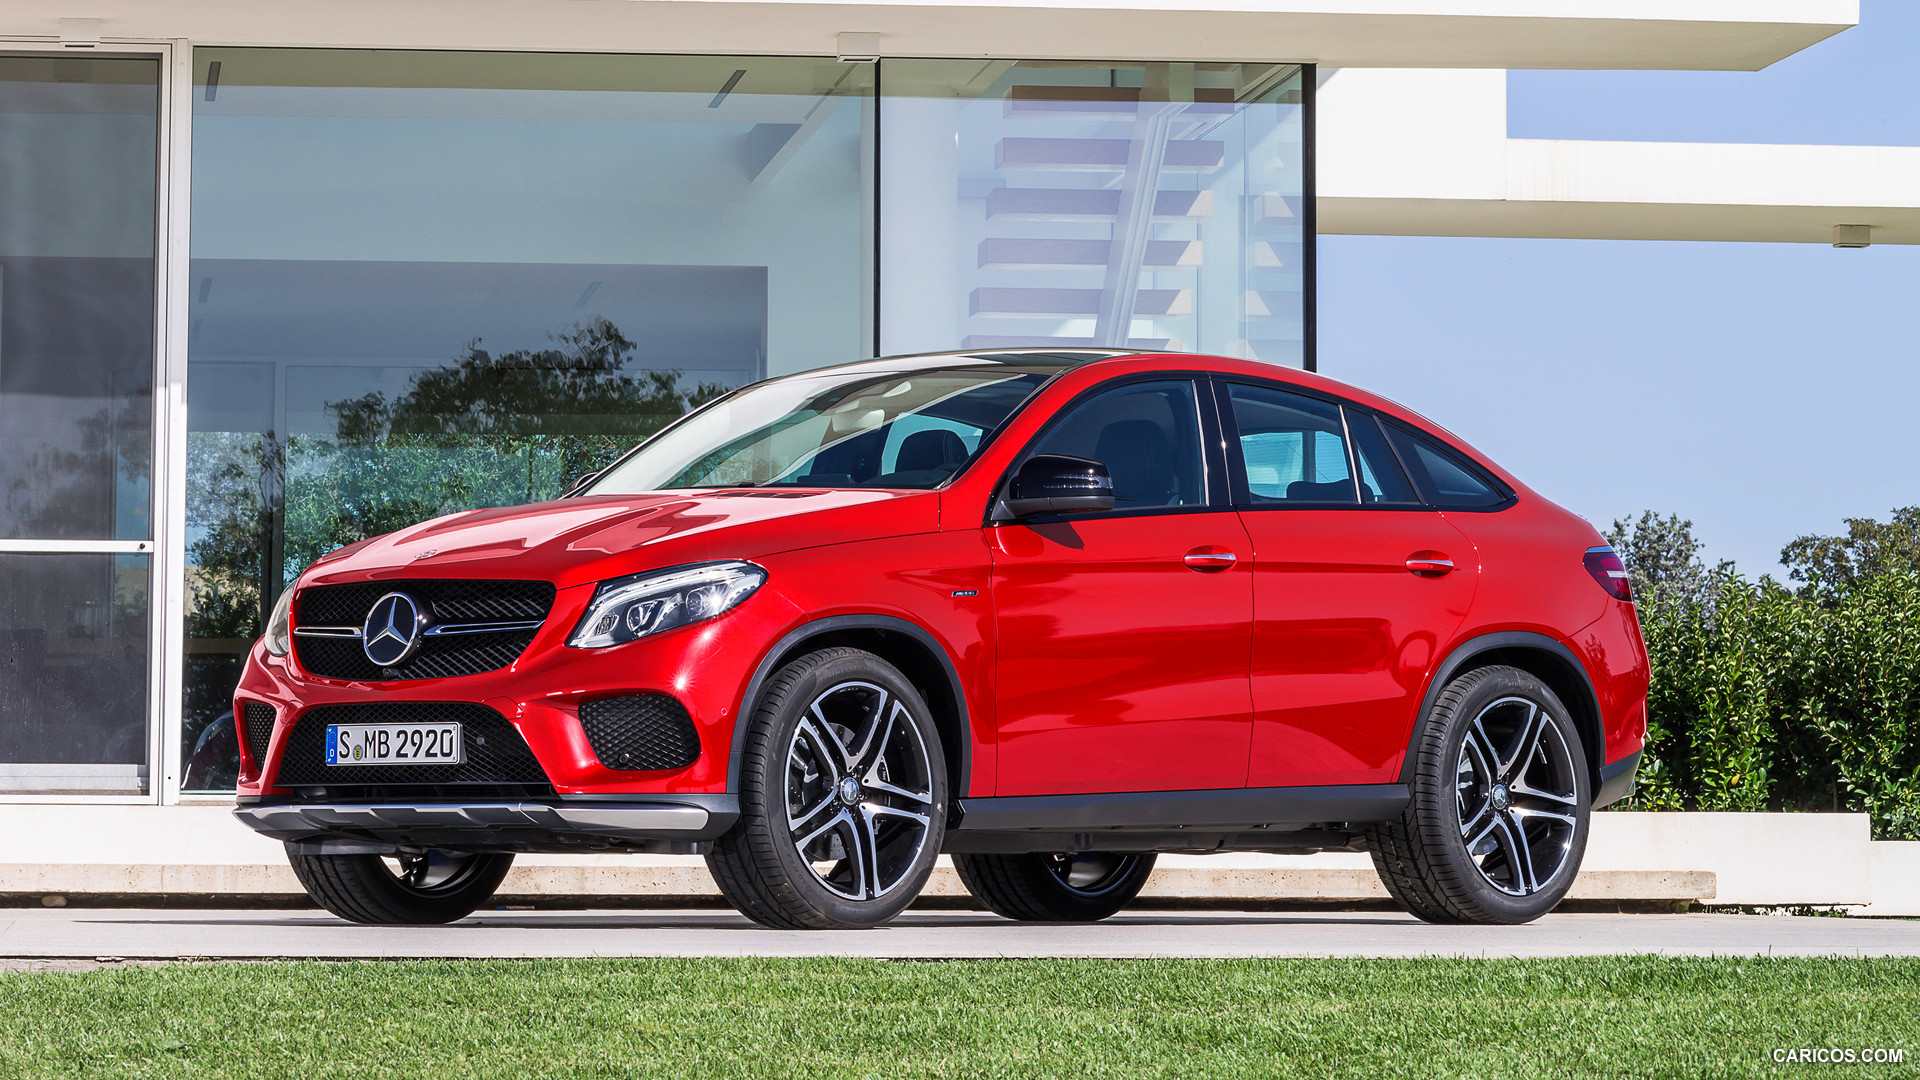 Mercedes benz gle 450 amg picture 134145 mercedes benz for Mercedes benz 450